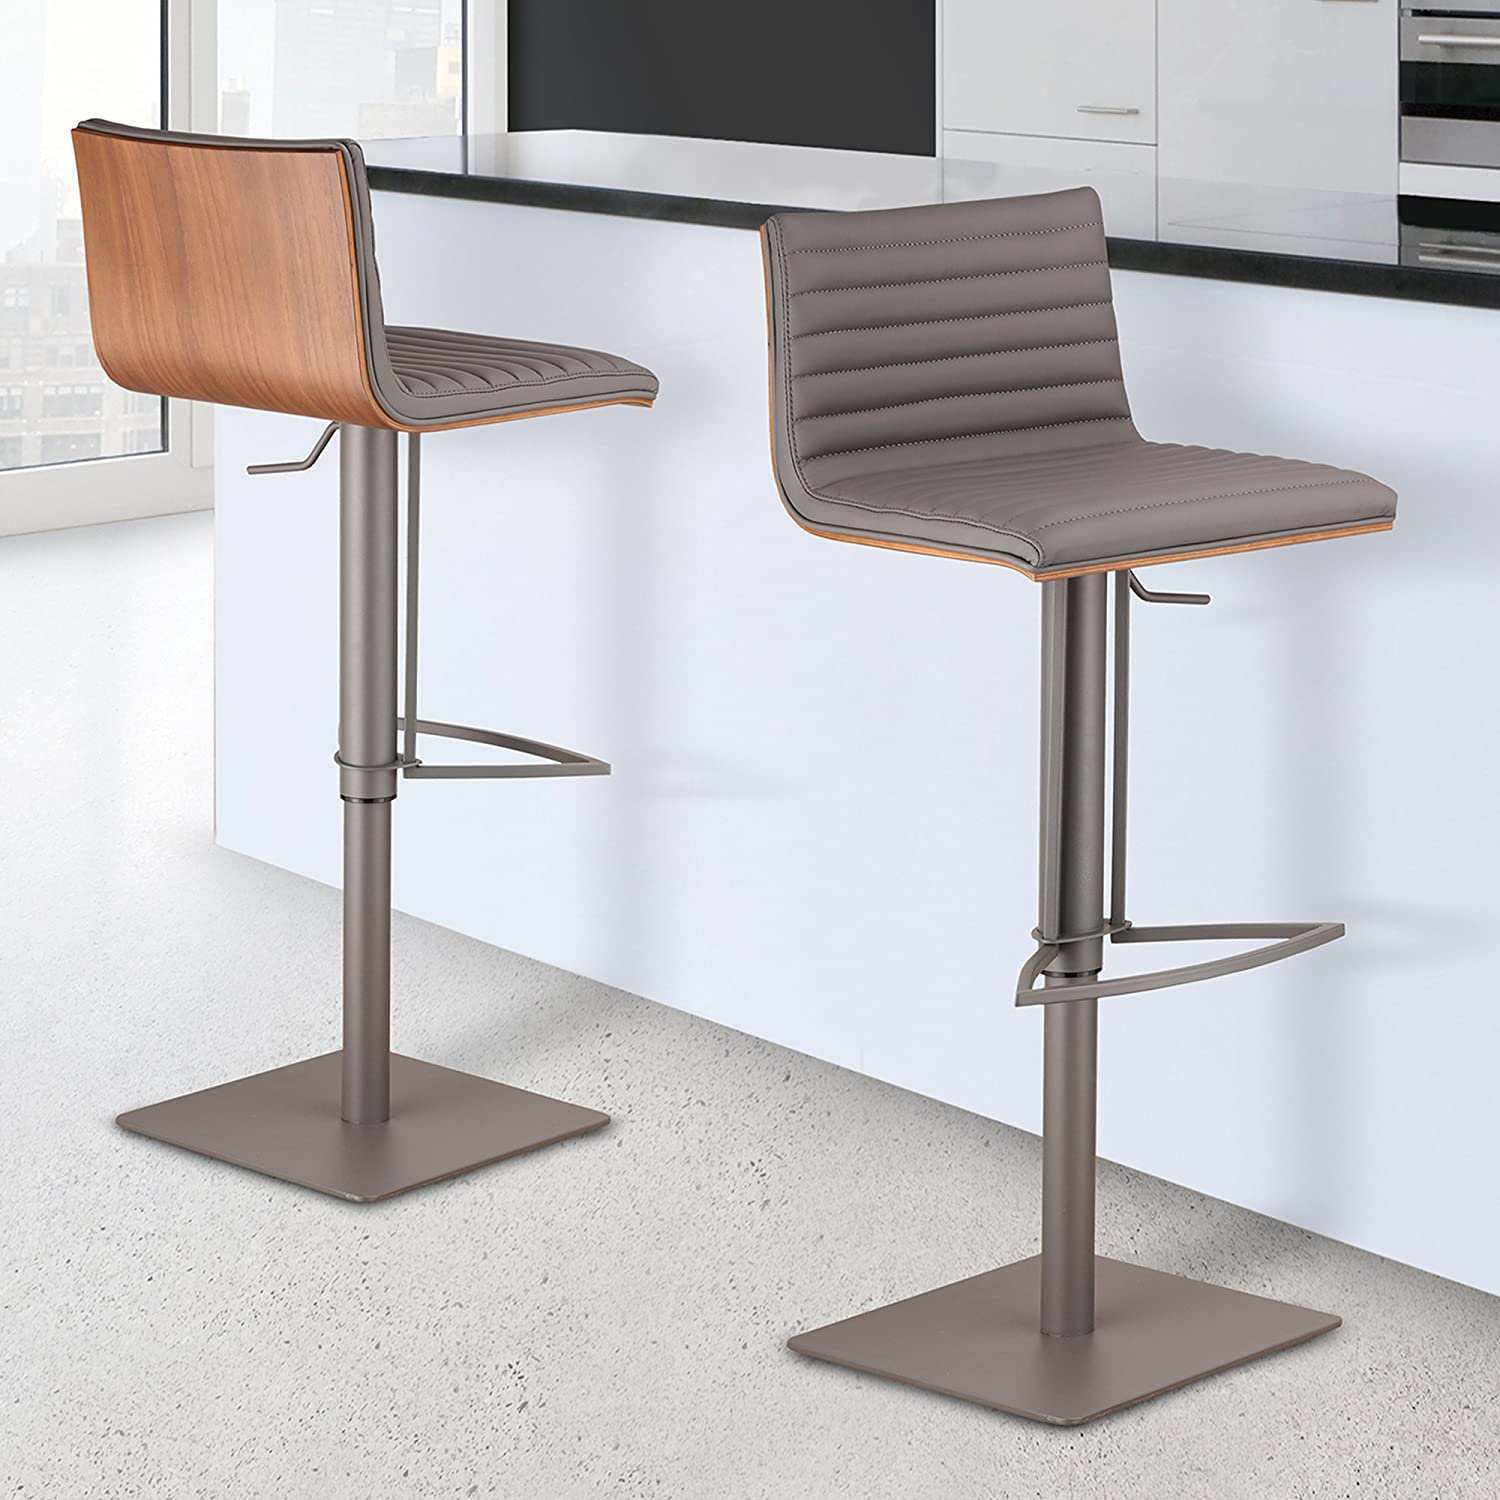 Armen Living LCCASWBAGRBA Café Adjustable Barstool in Grey Faux Leather Gray